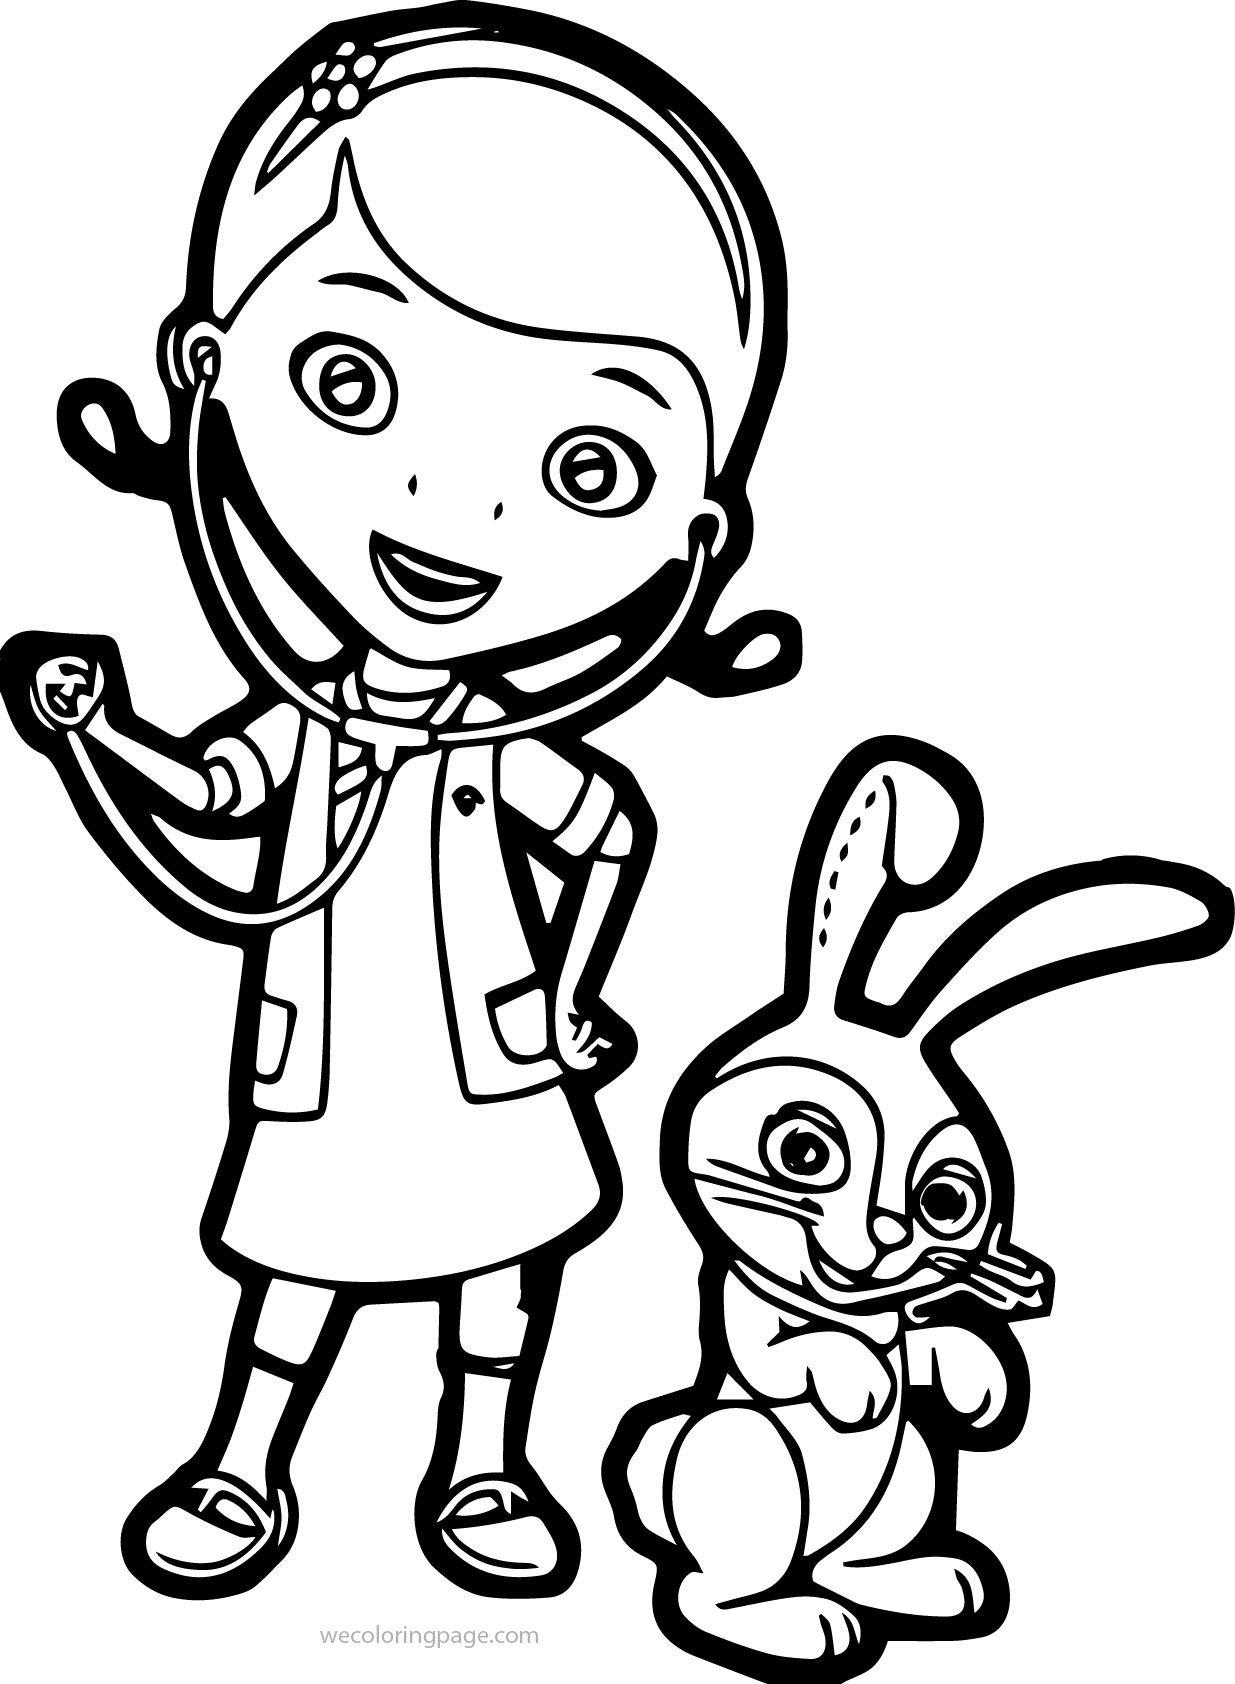 Coloring pages for doc mcstuffins - Doc Mcstuffins Pet Vet Bunny Coloring Page